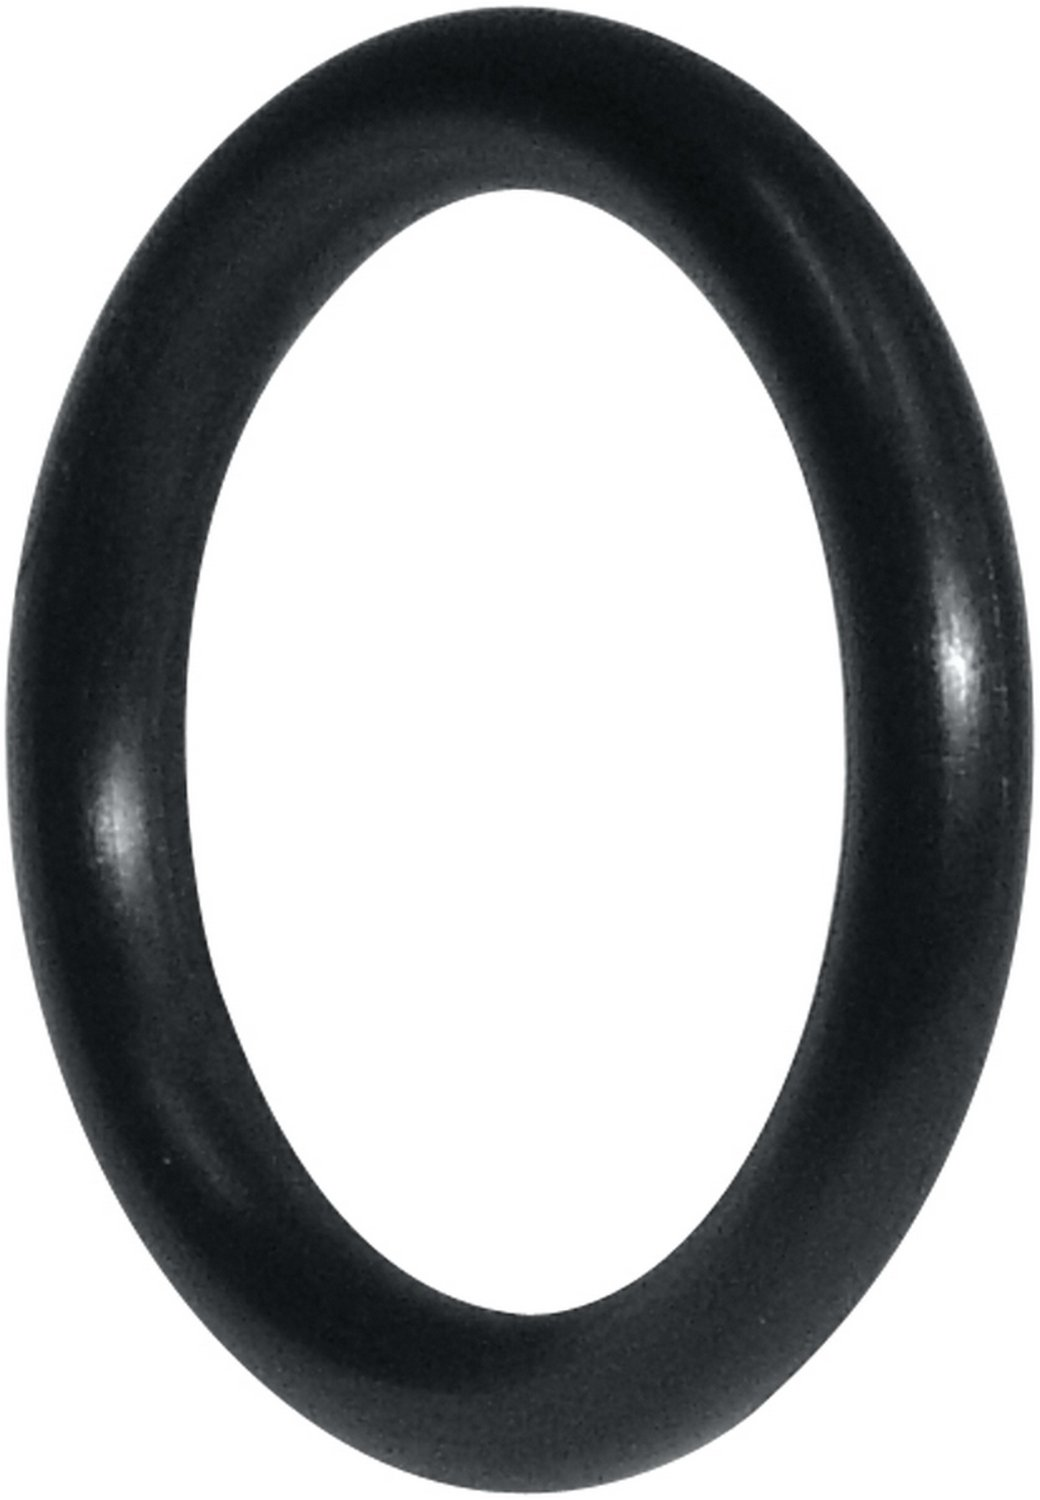 Coxreels 521-SEALKIT Nitrile Replacement Swivel O-Ring Seal Kit,Black/White 3/8'' Size by Coxreels